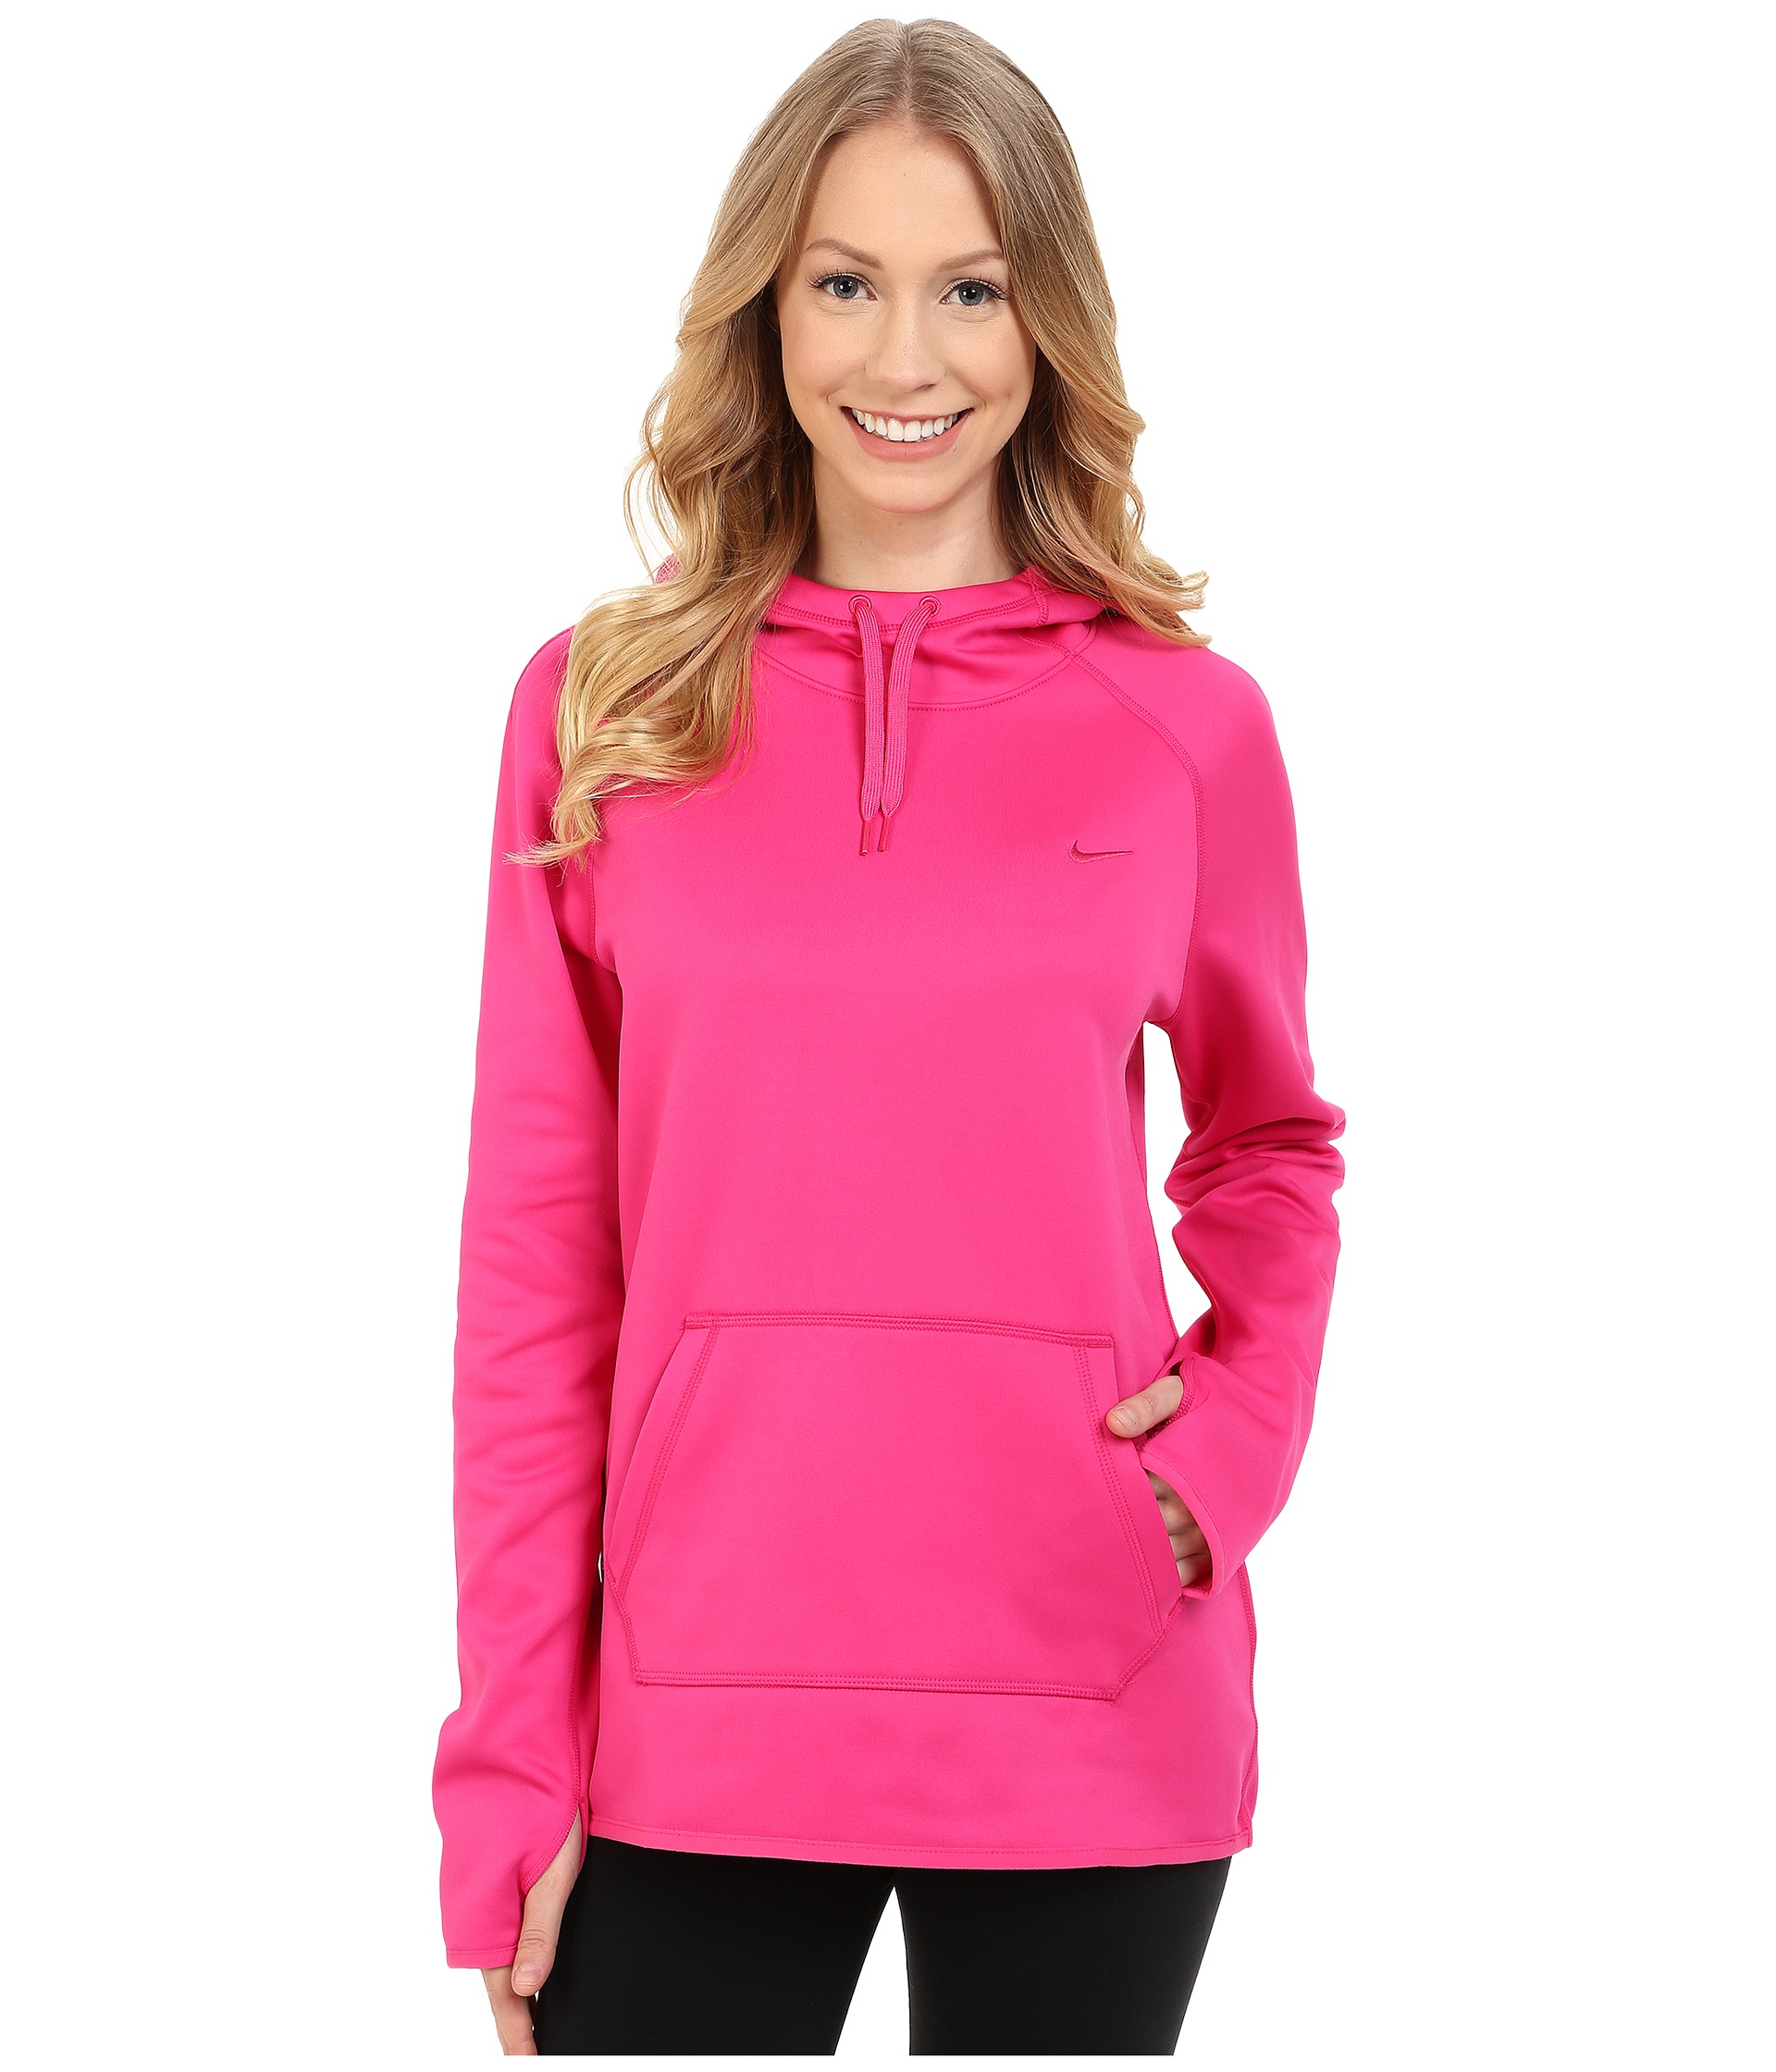 b0166f6fe27d Lyst - Nike All Time Pullover Hoodie in Pink